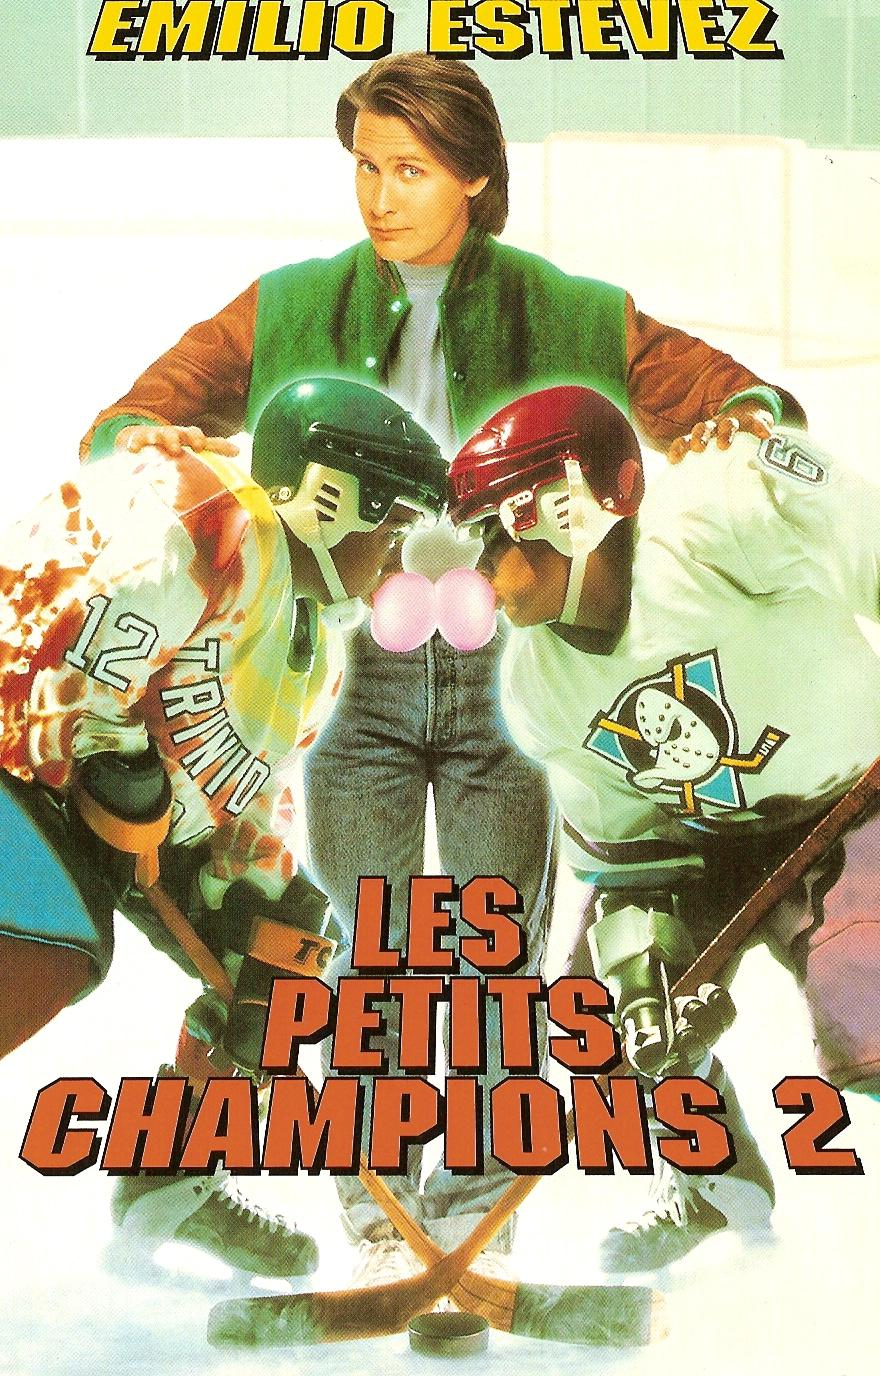 walt disney company walt disney pictures affiche petits champions 2 poster D2 mighty ducks